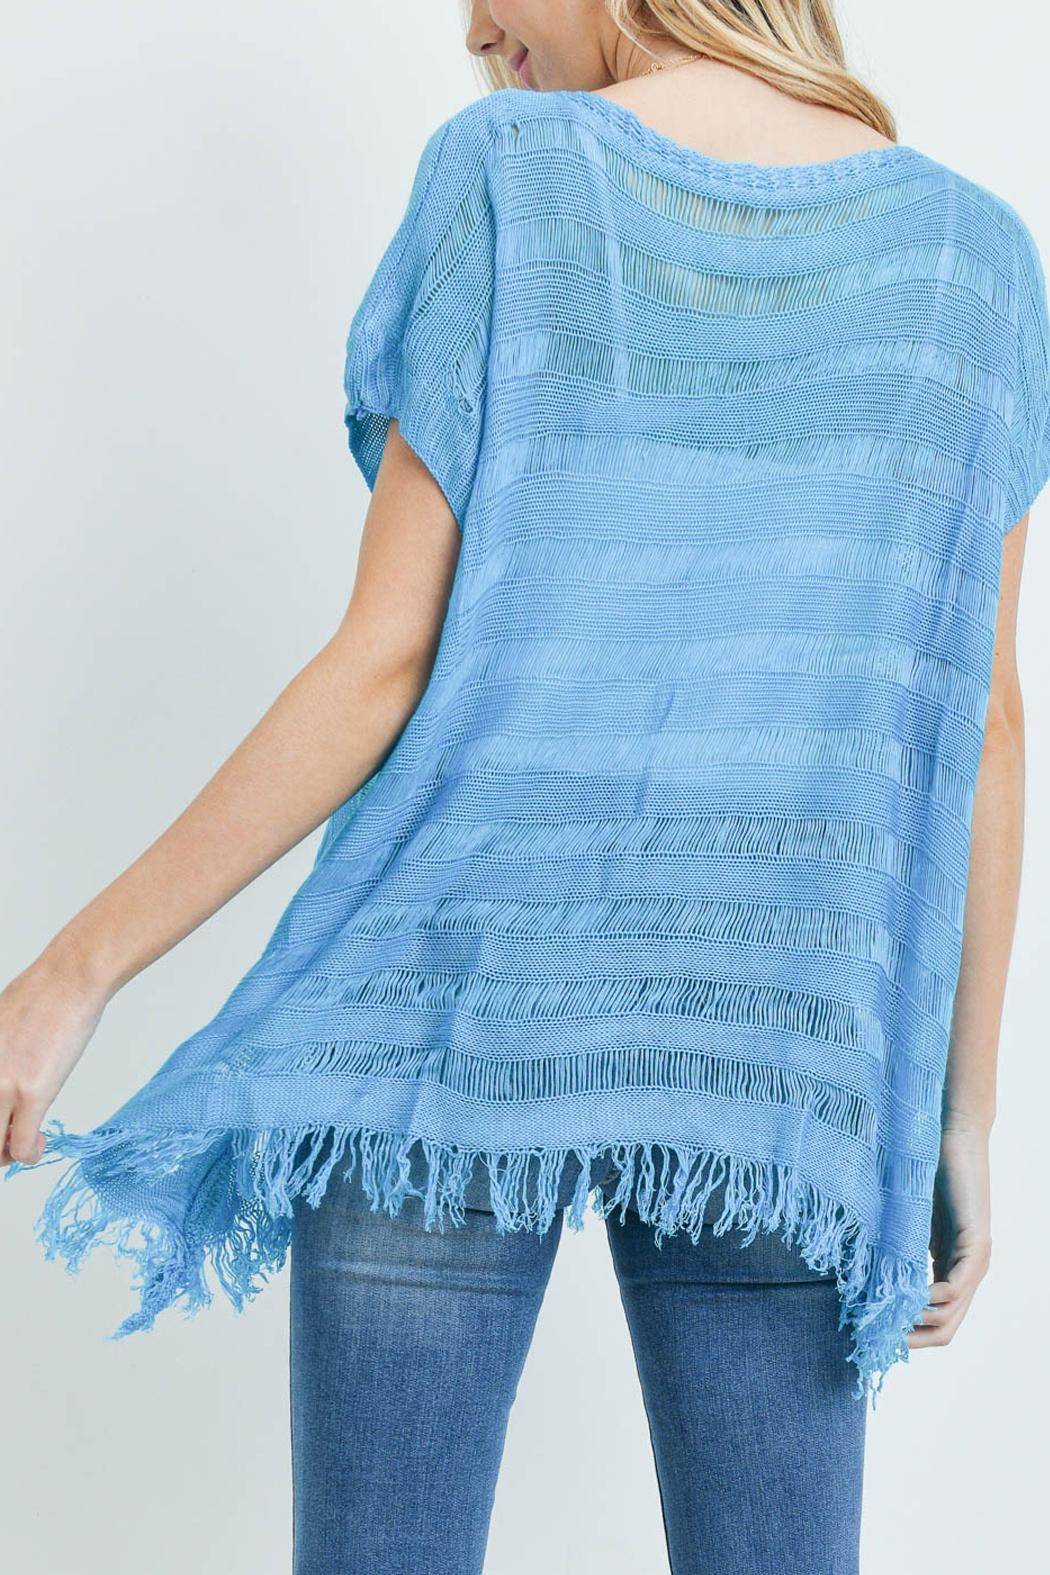 Riah Fashion Short-Sleeves See-Through-Knitted-Tassel Top - Front Full Image